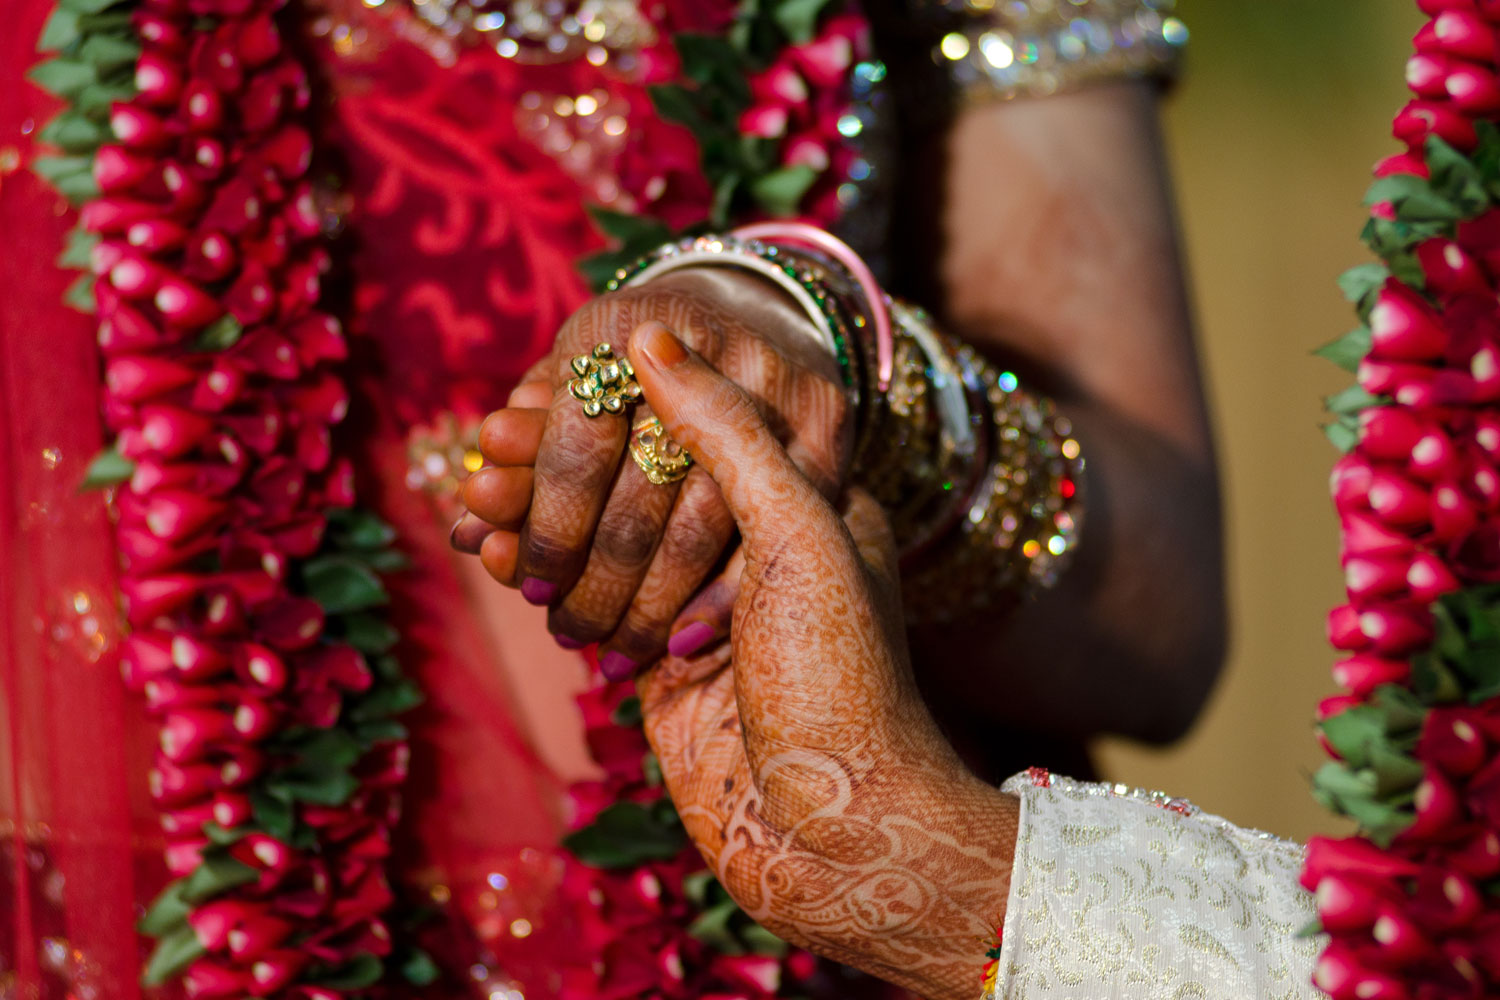 Voters in the constituency of Tonk-Sawai Madhopur in India's Rajasthan state can get a free wedding by voting for a local independent candidate